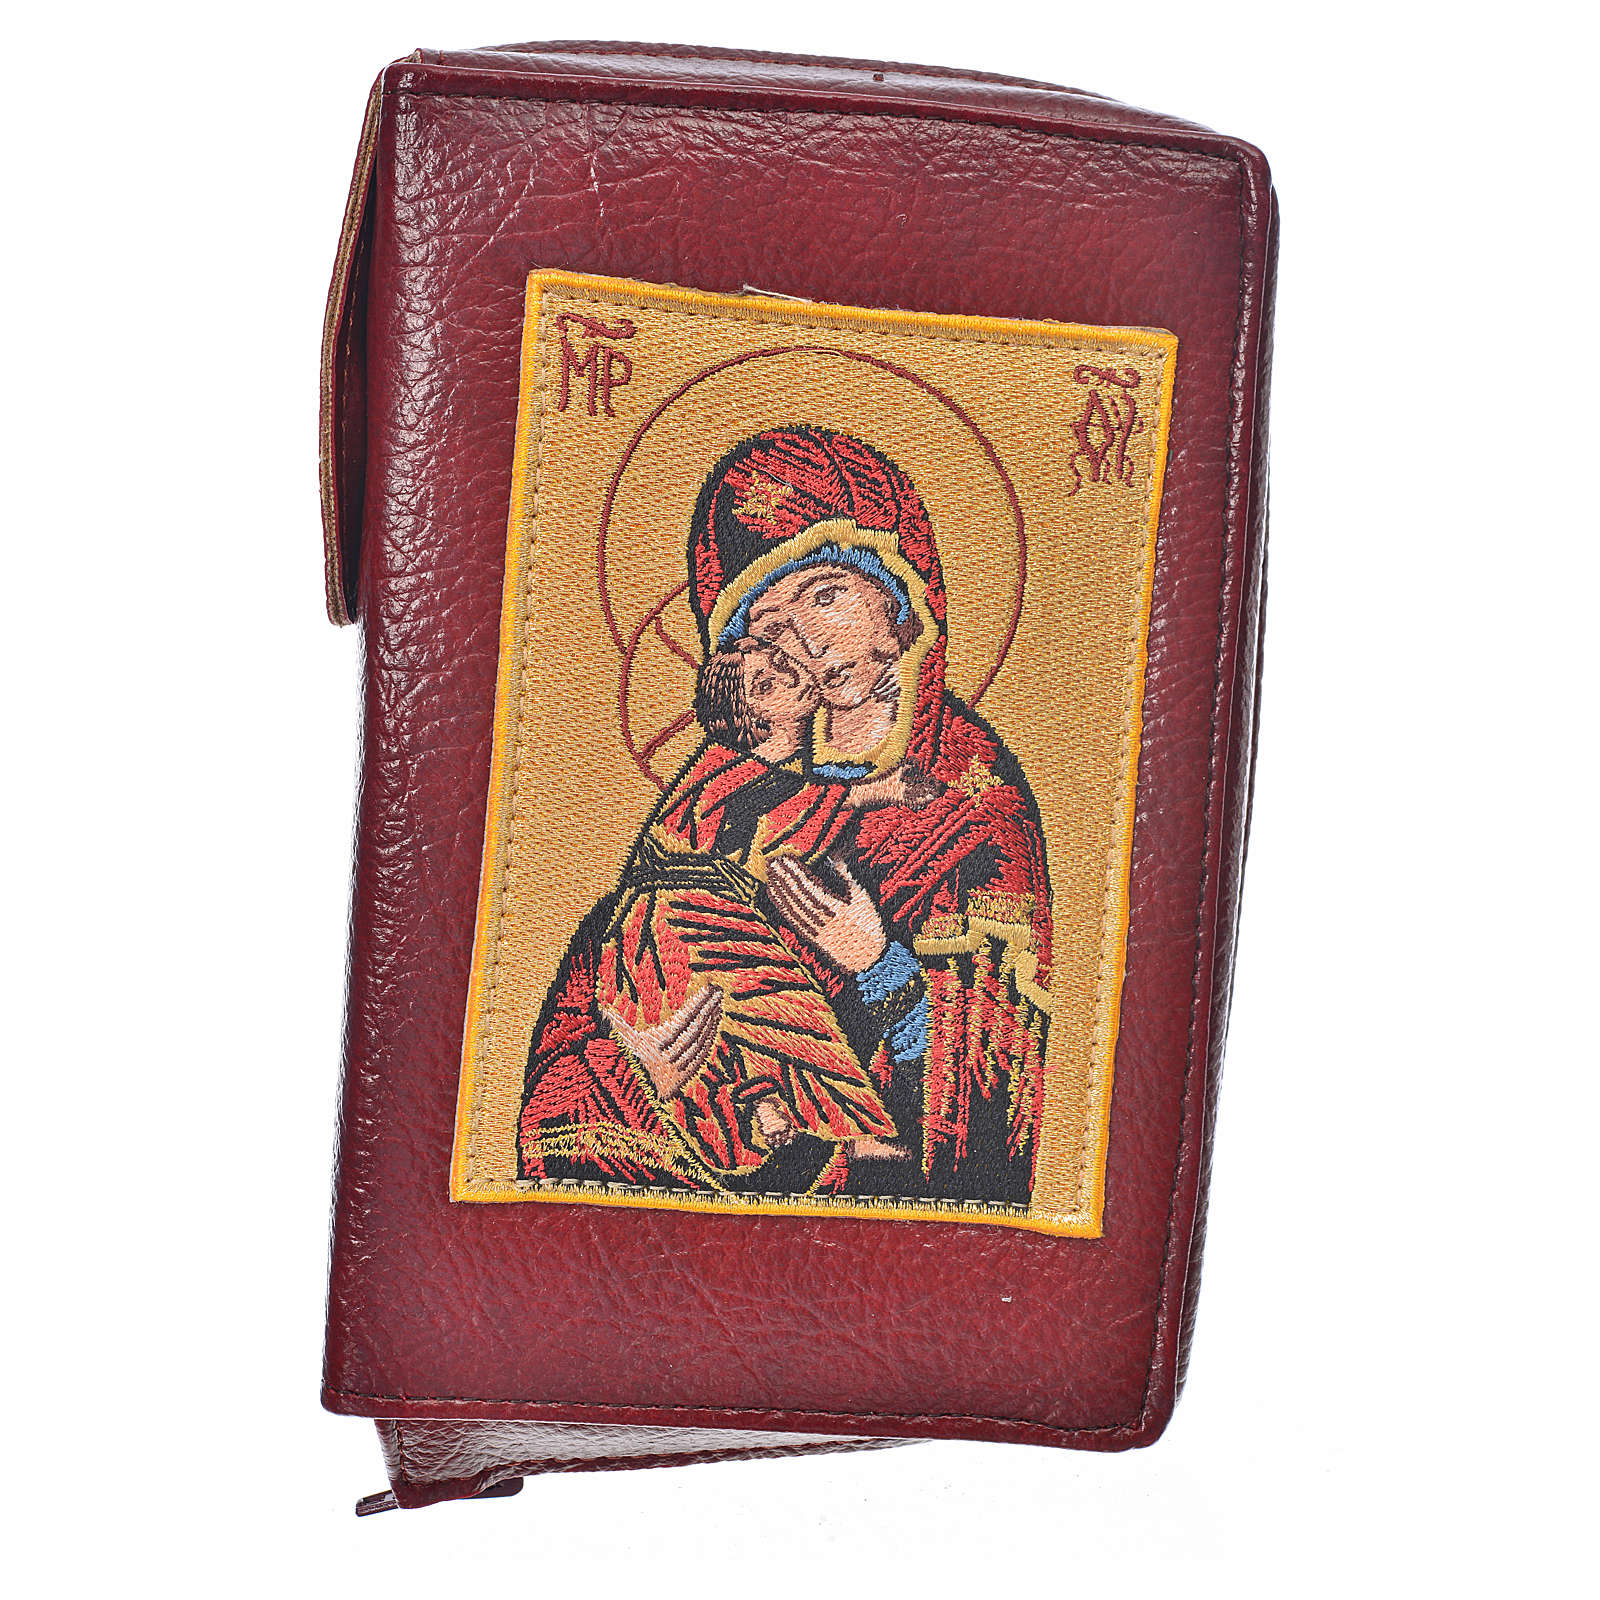 Hardcover New Jerusalem Bible burgundy bonded leather, Our Lady of Tenderness image 4